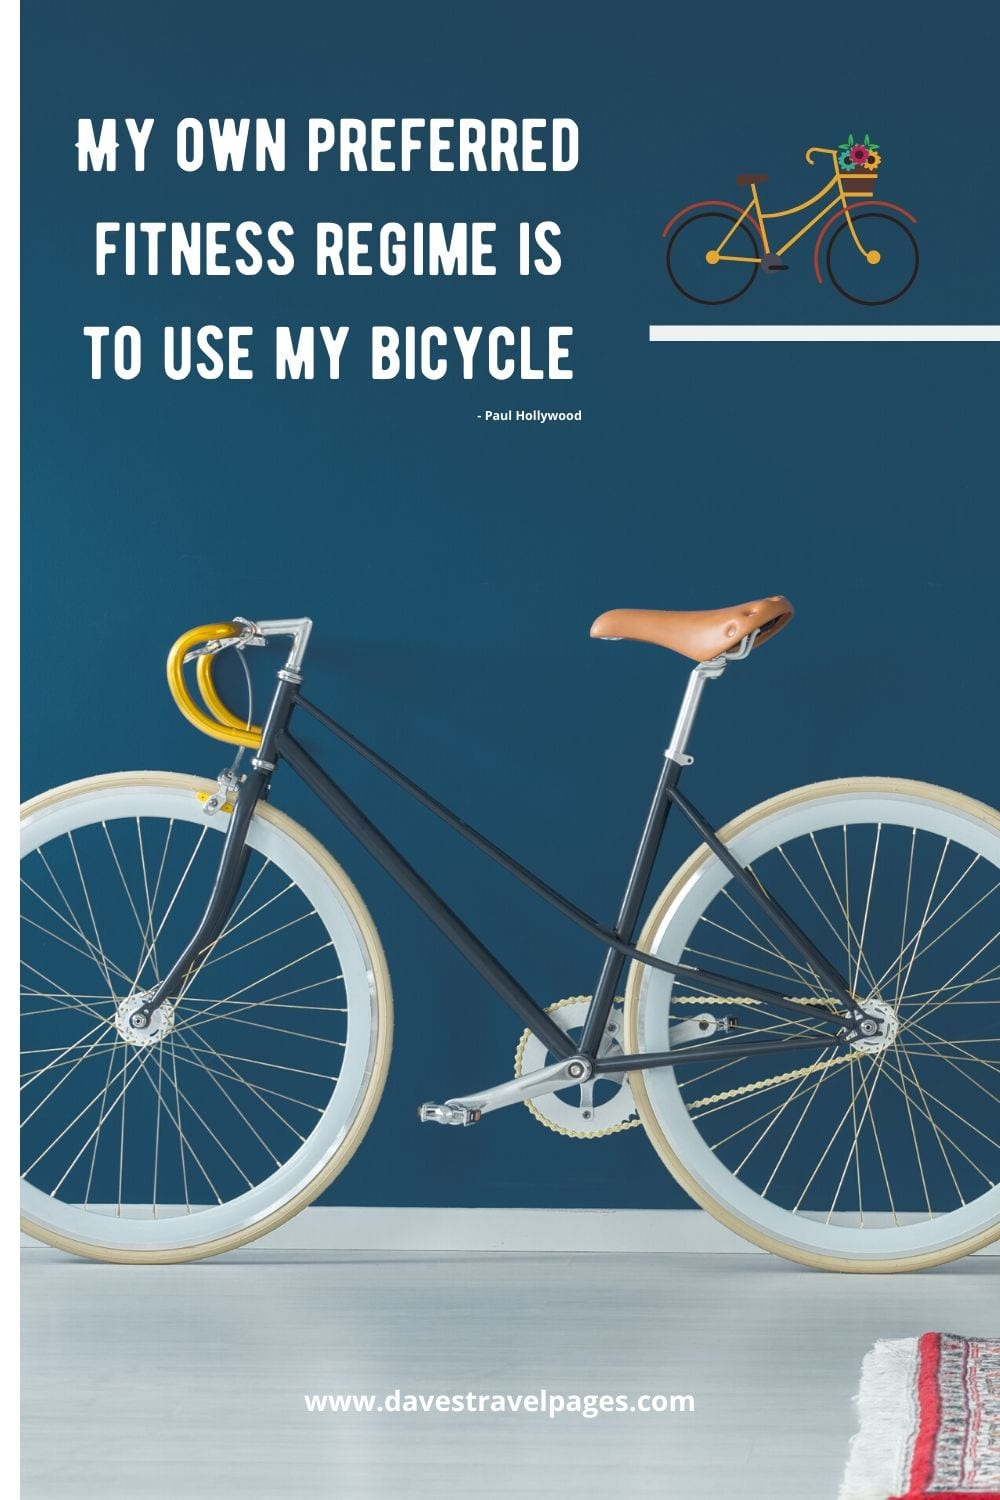 Bicycle sayings - My own preferred fitness regime is to use my bicycle. Paul Hollywood